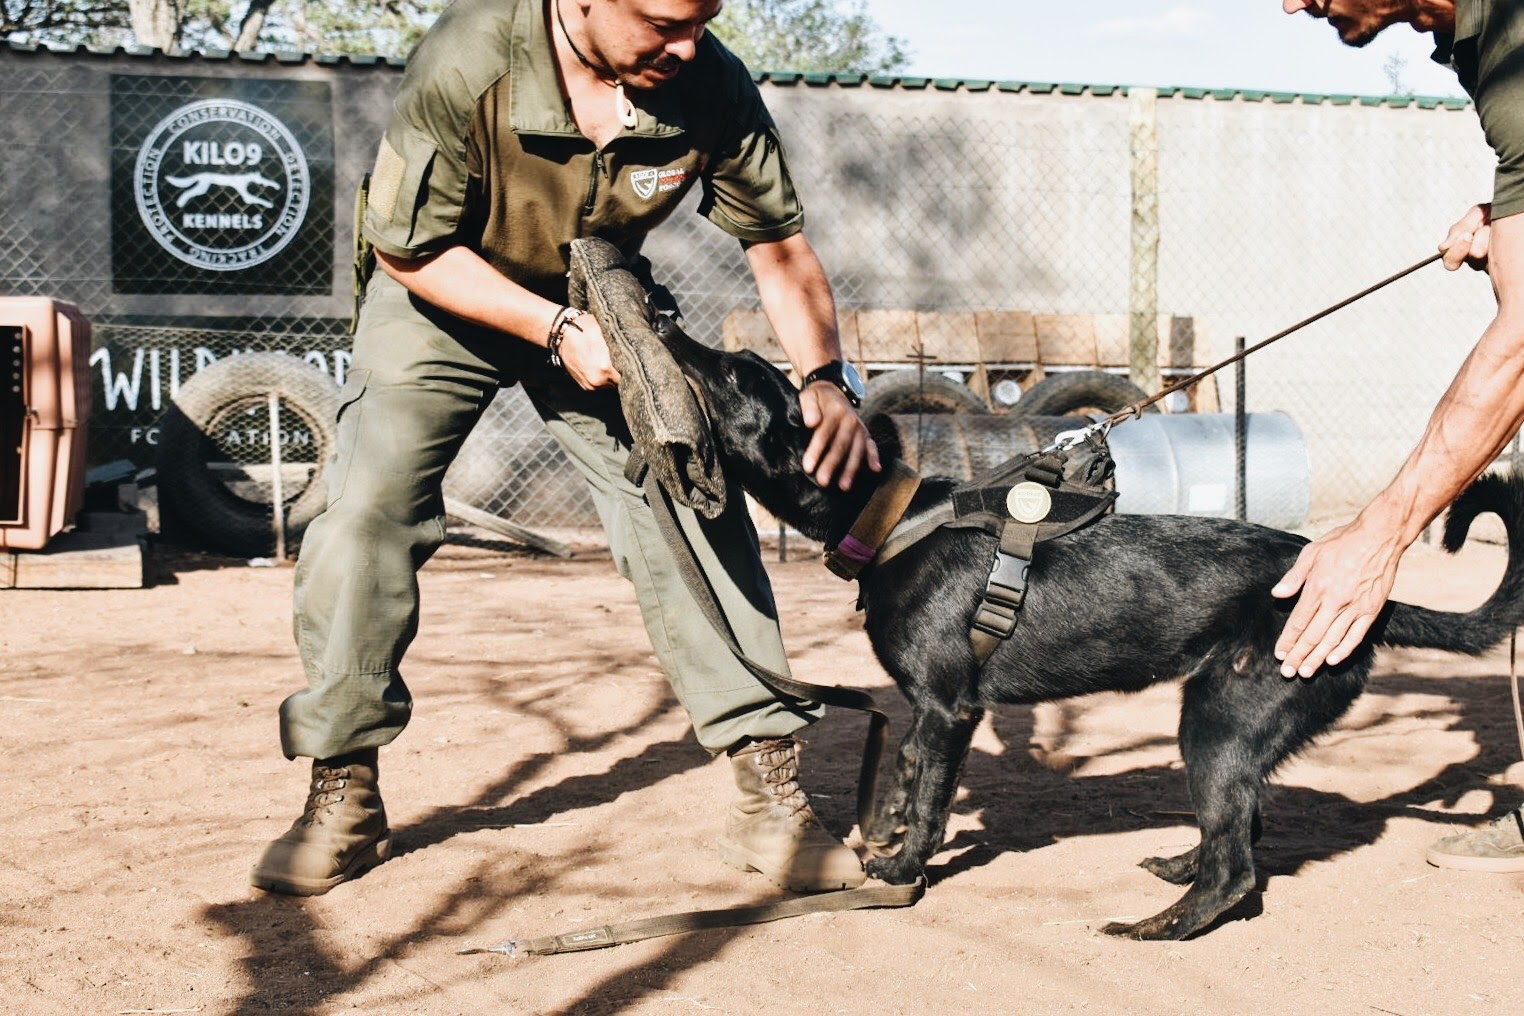 A black working dog in bite training with two handlers